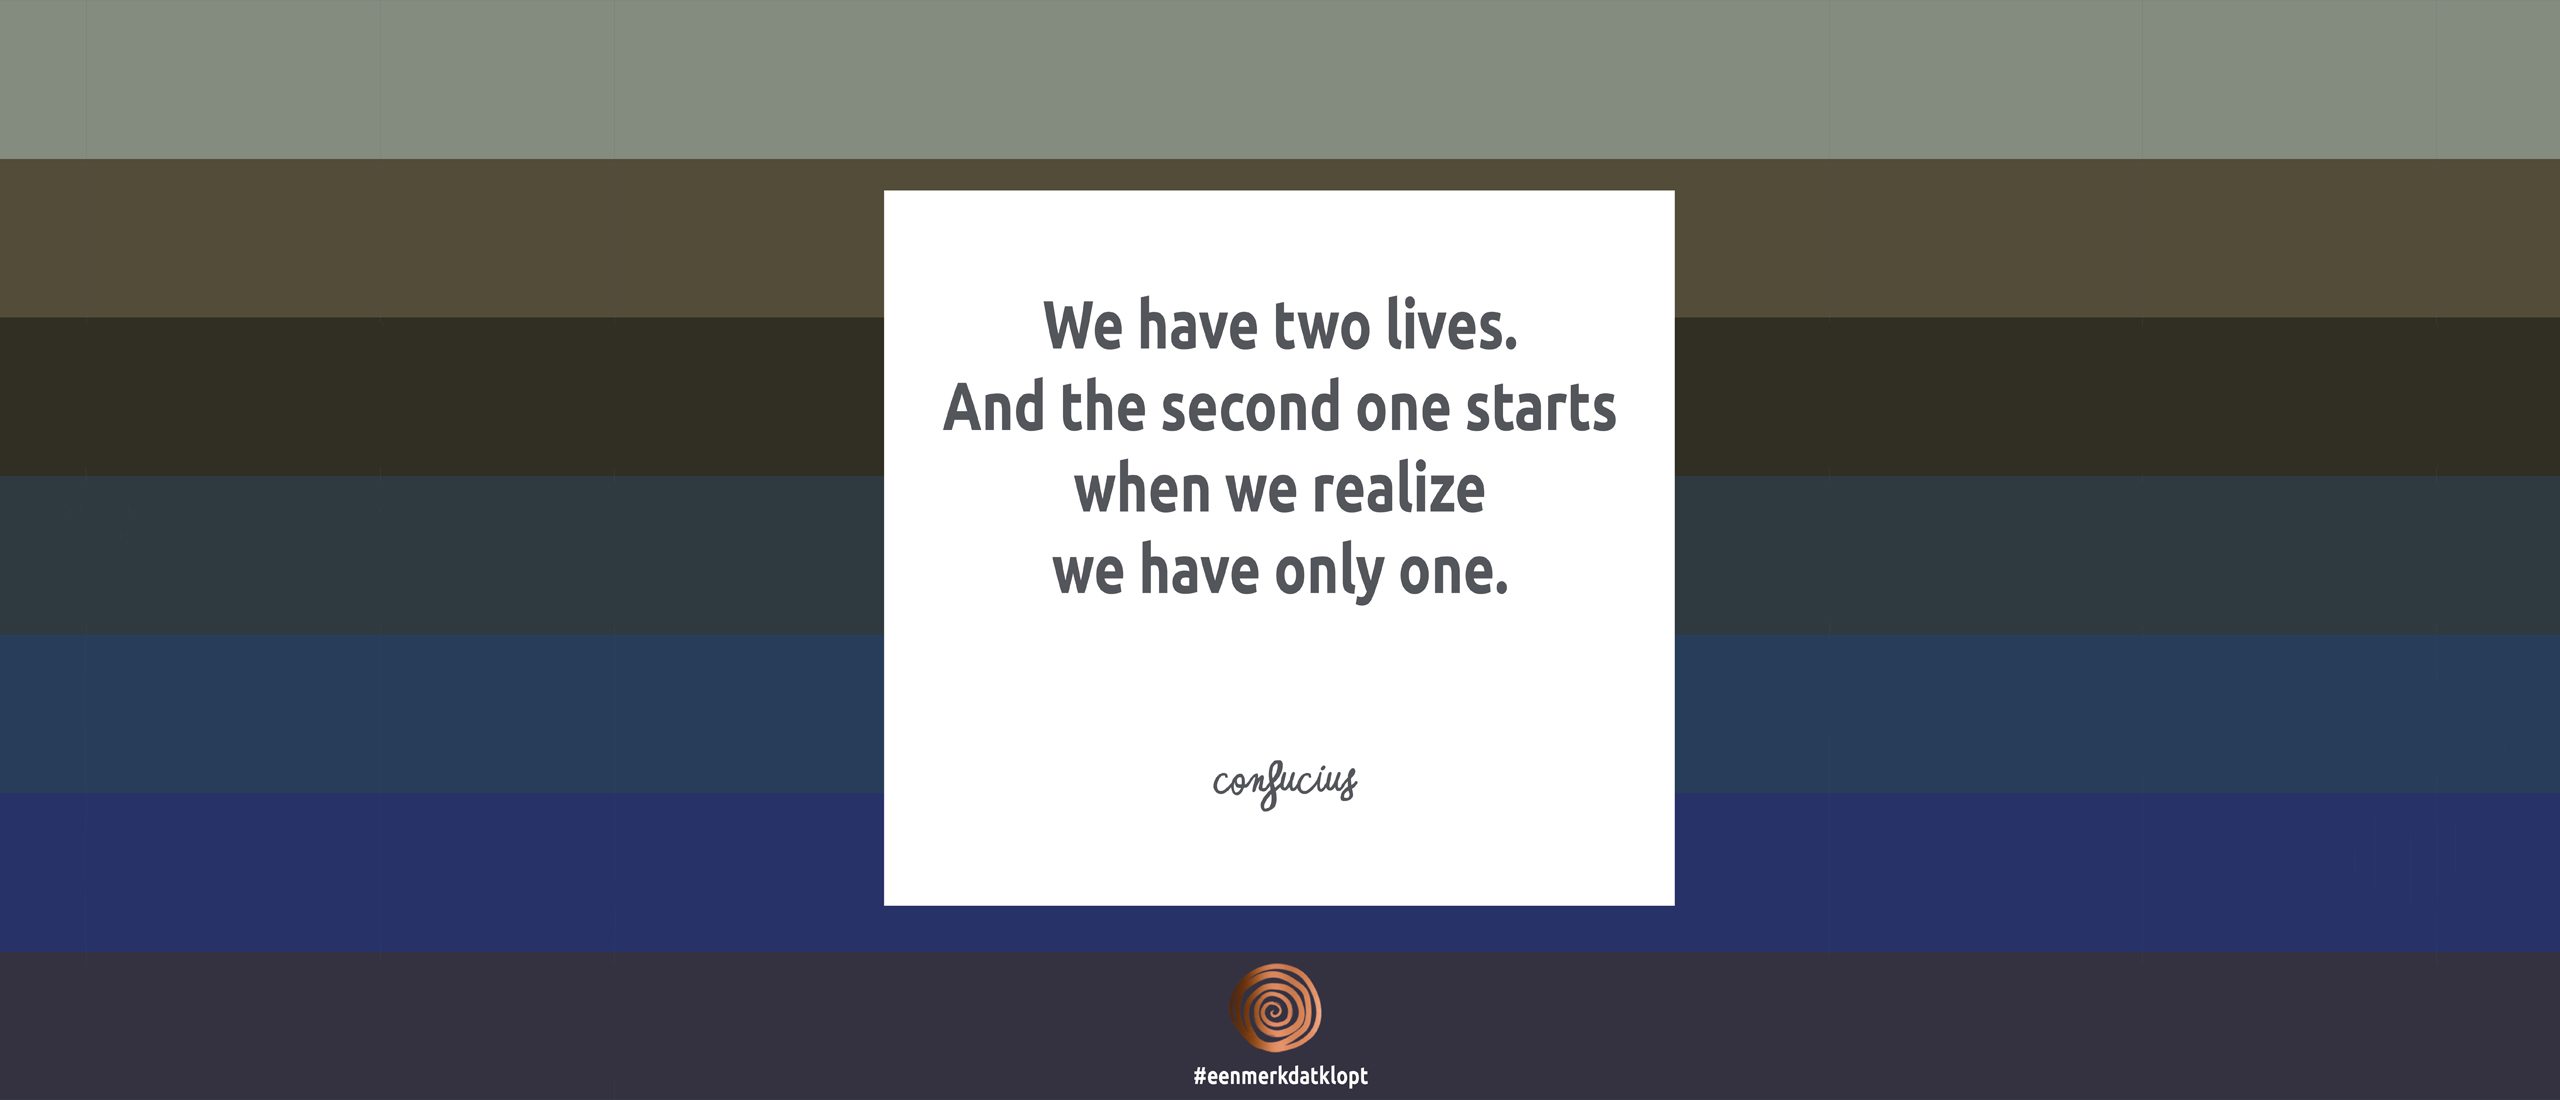 We have two lives